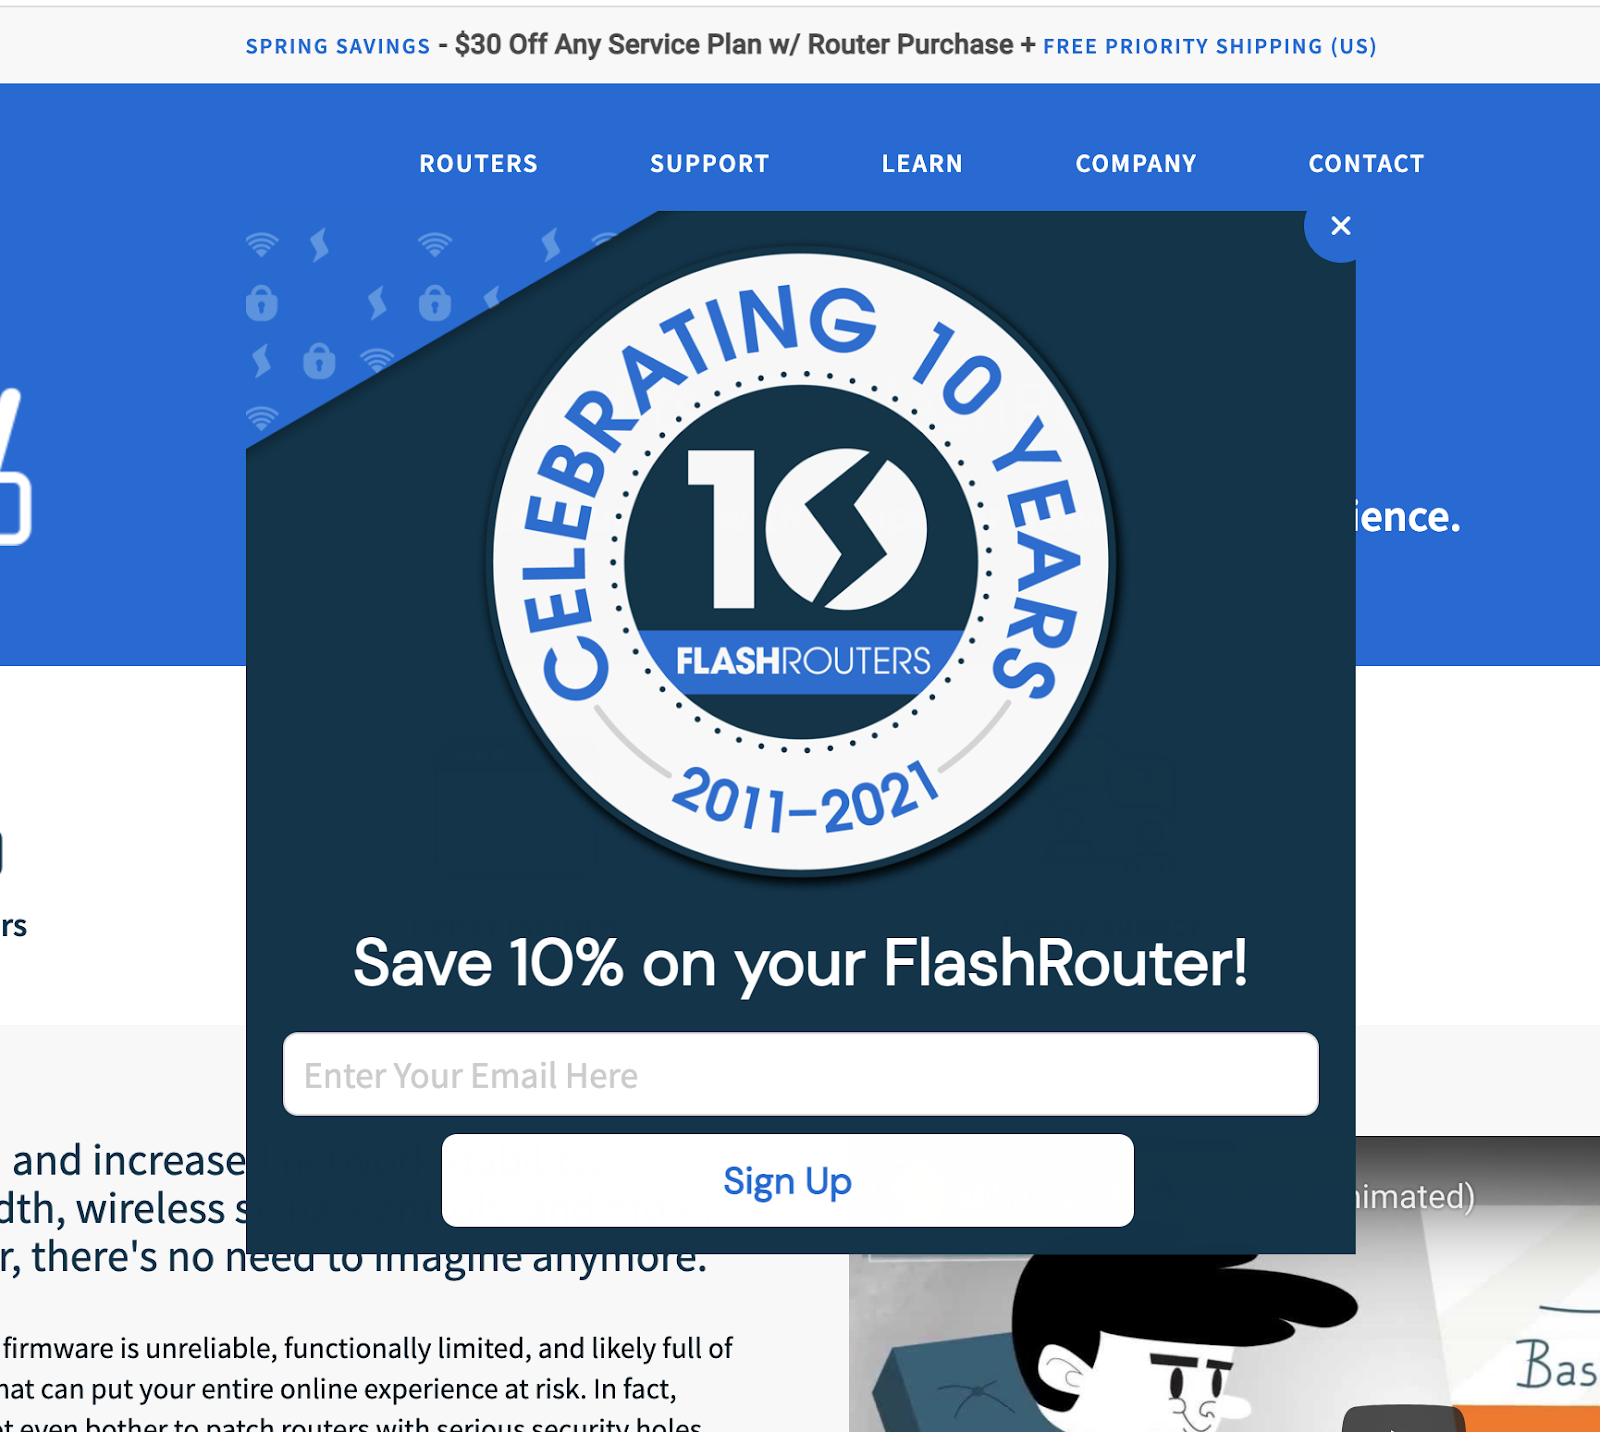 flashouters - gated content popup